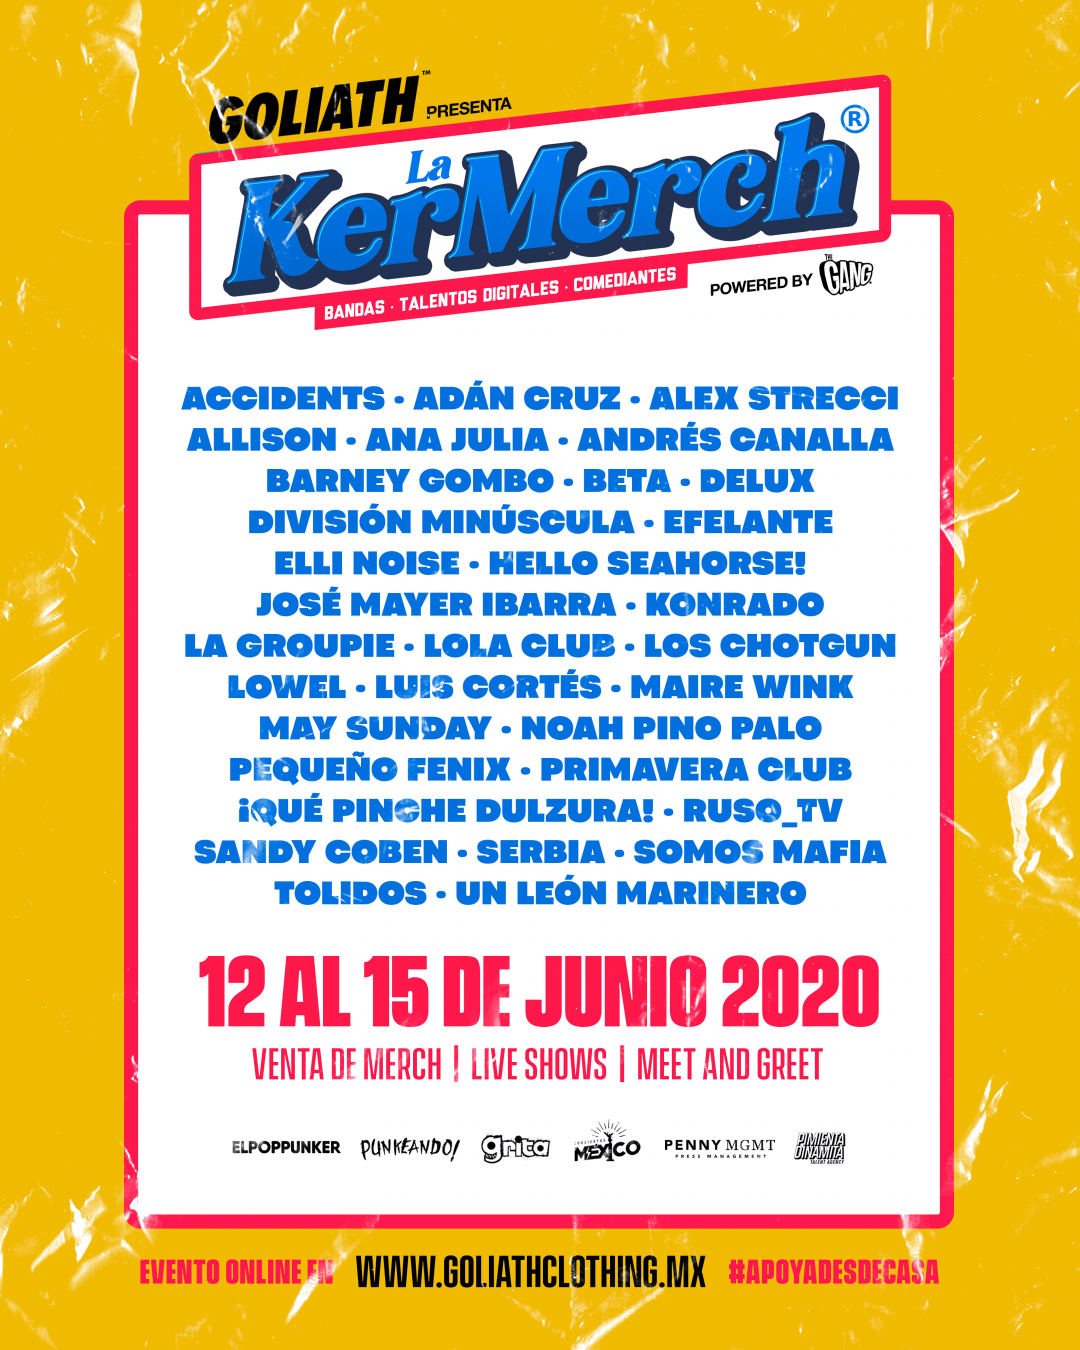 La KerMerch venta de mercancía, live shows, meet and greet y más